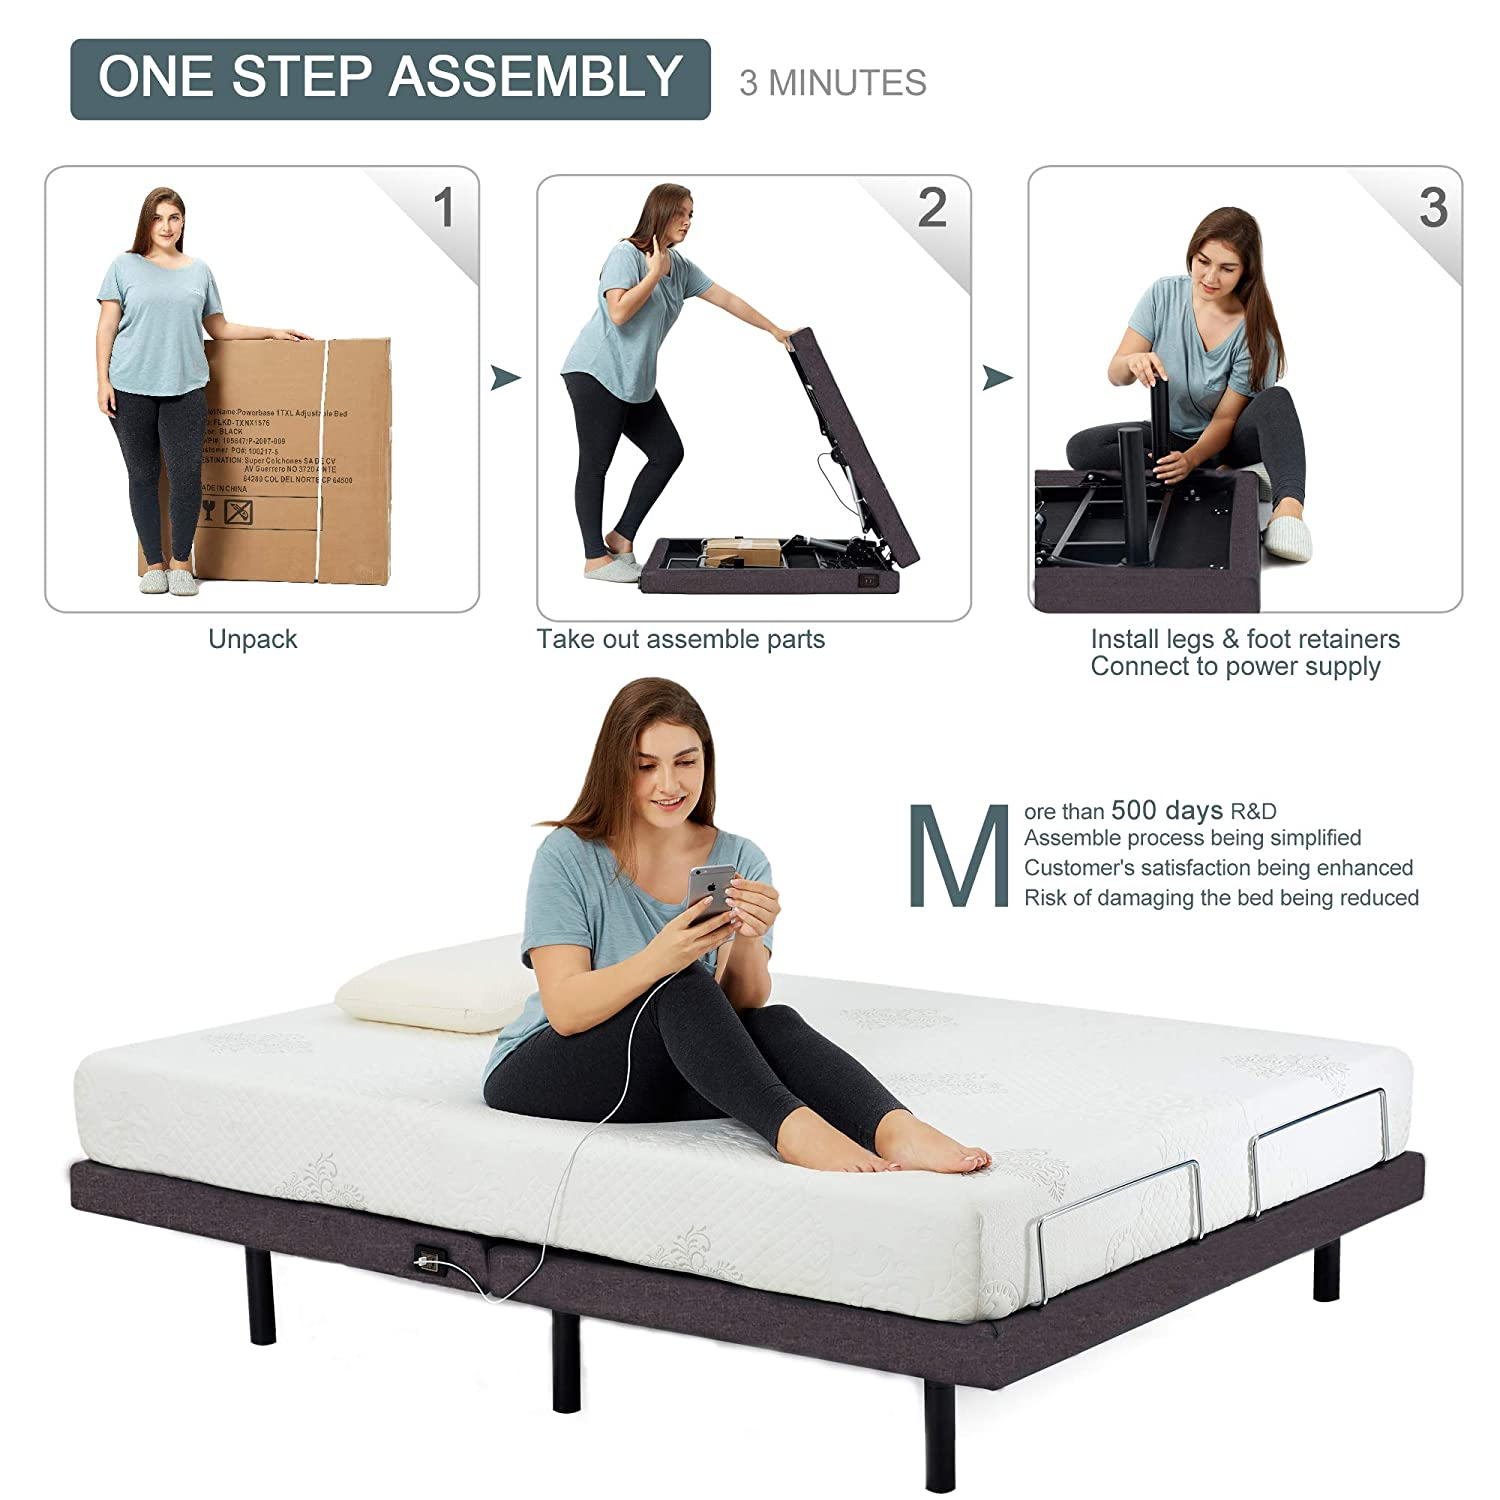 HOFISH 2S Wired Mesh Layer Adjustable Bed Base - One-Step Assembly Twin XL Adjustable Bed Base with Backlit Wireless Remote, USB Port Twin XL